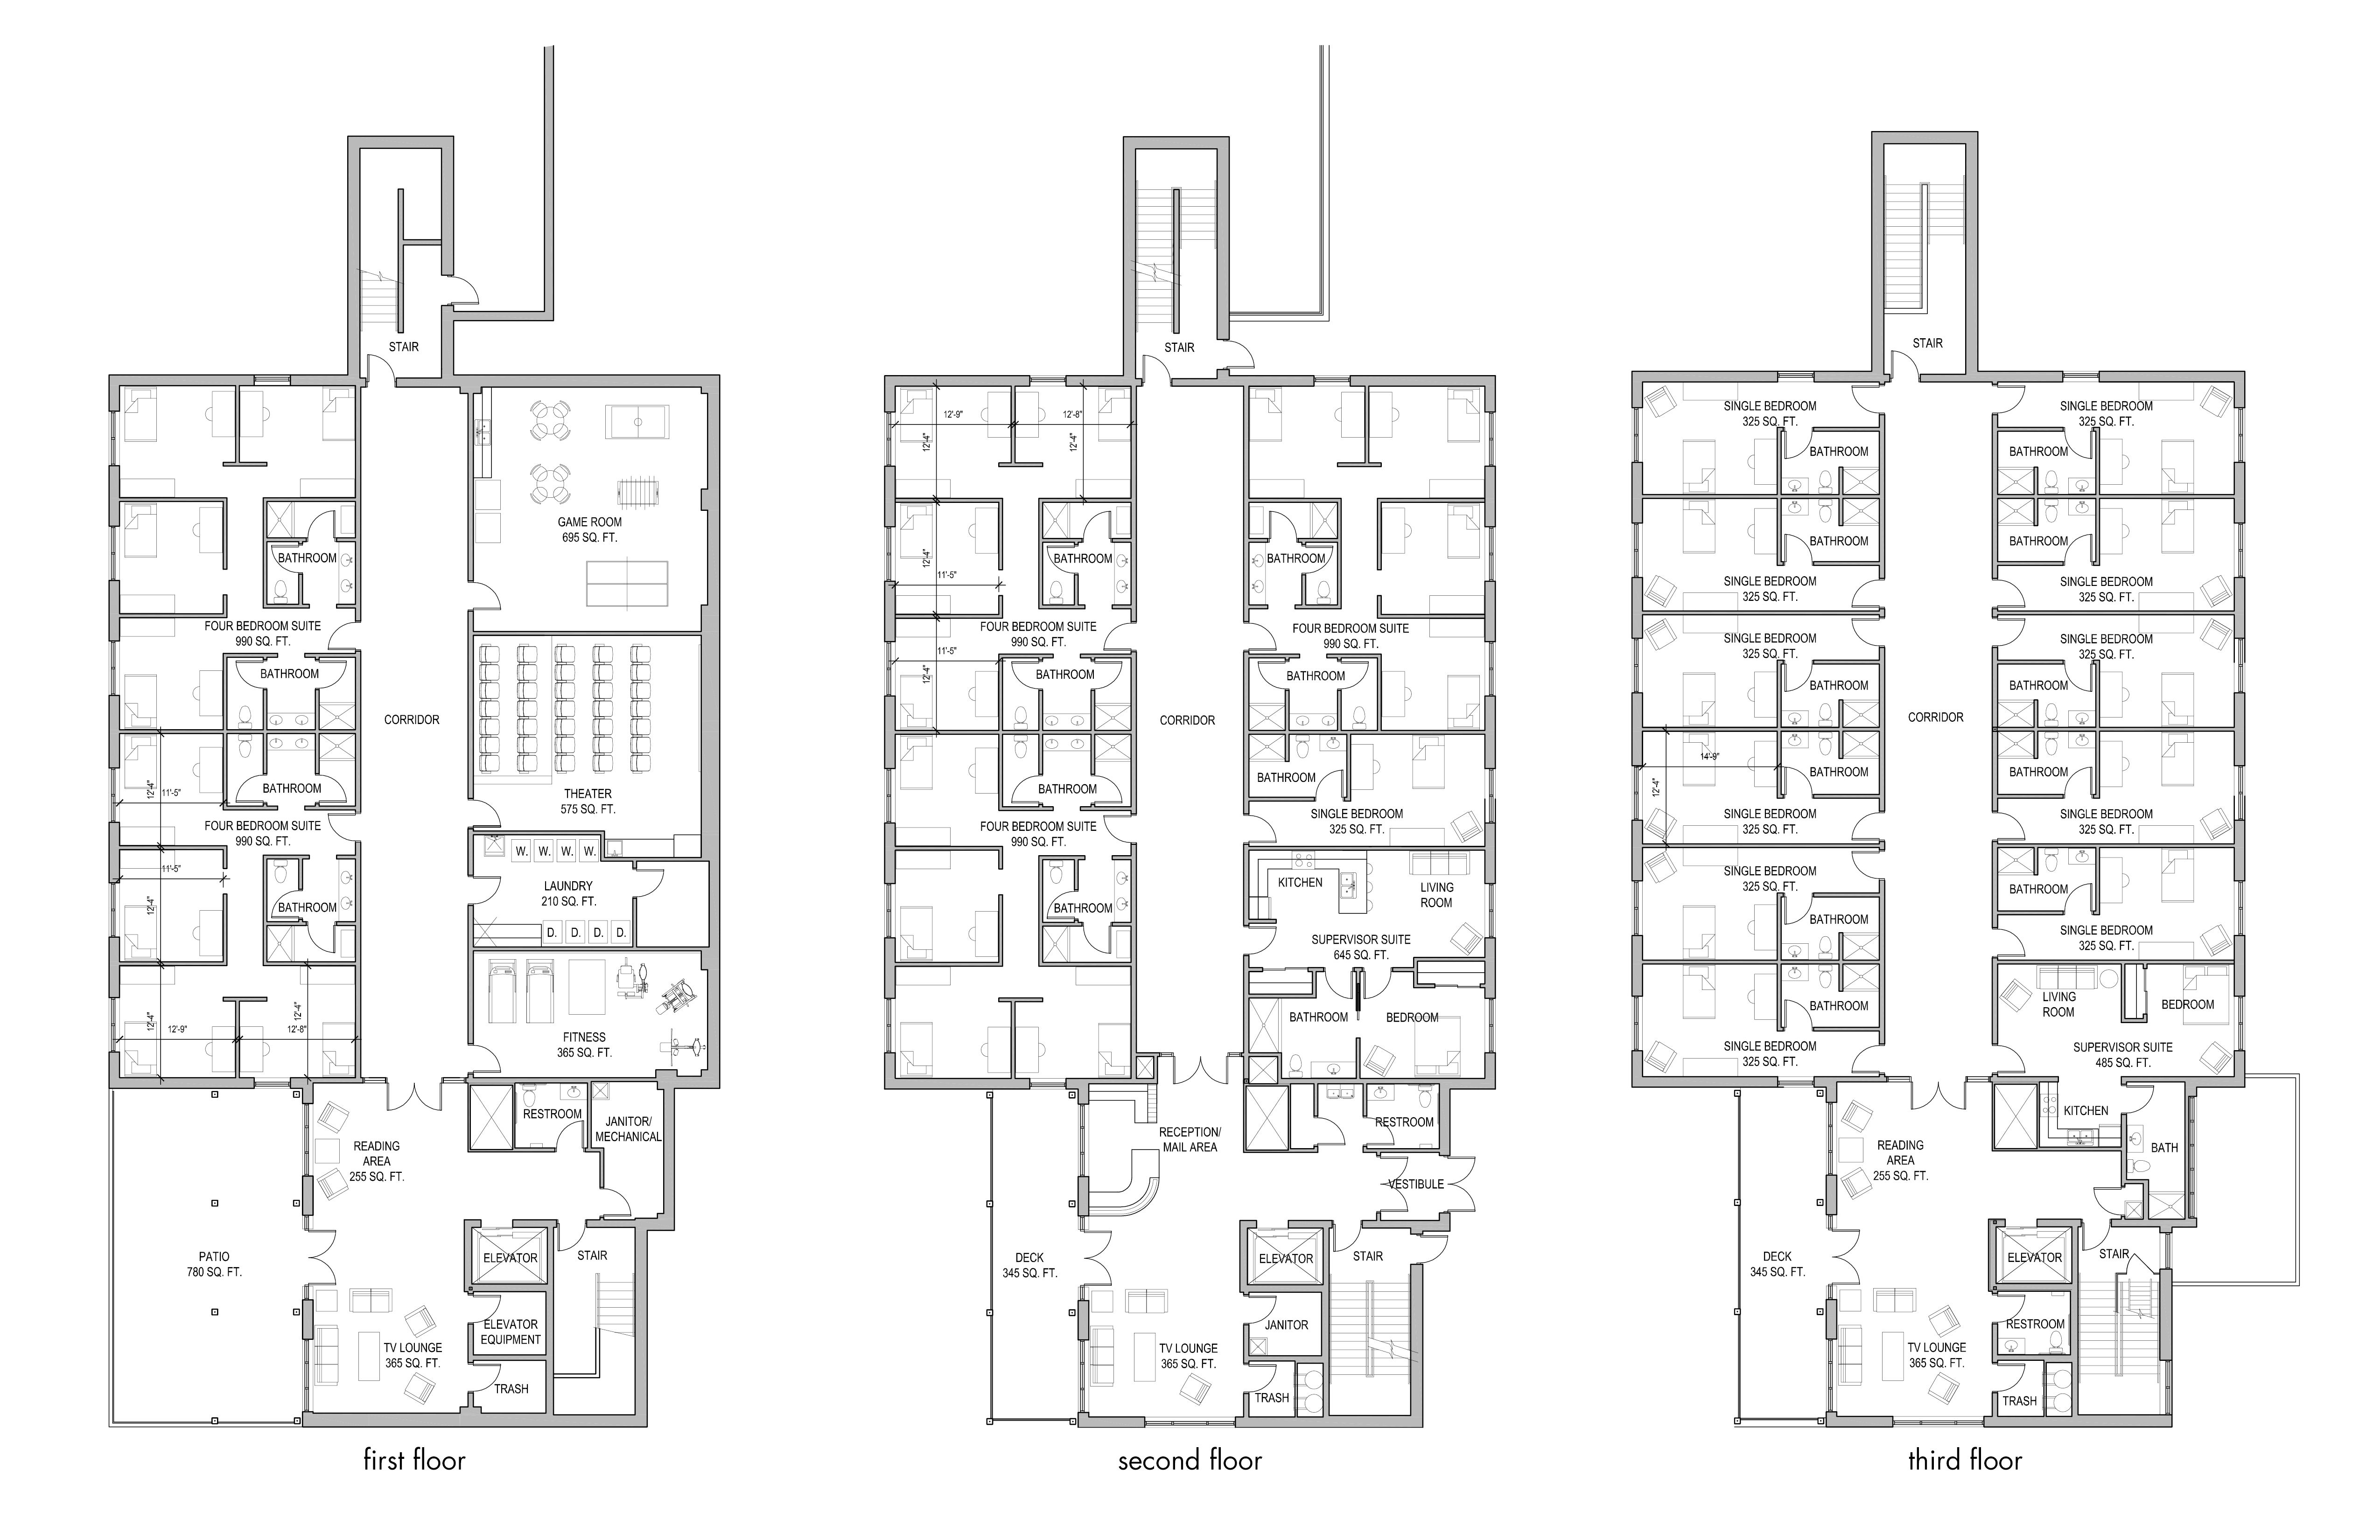 Teaching Kitchen Floor Plan Boarding School Floor Plan Layouts  Boarding School  Features